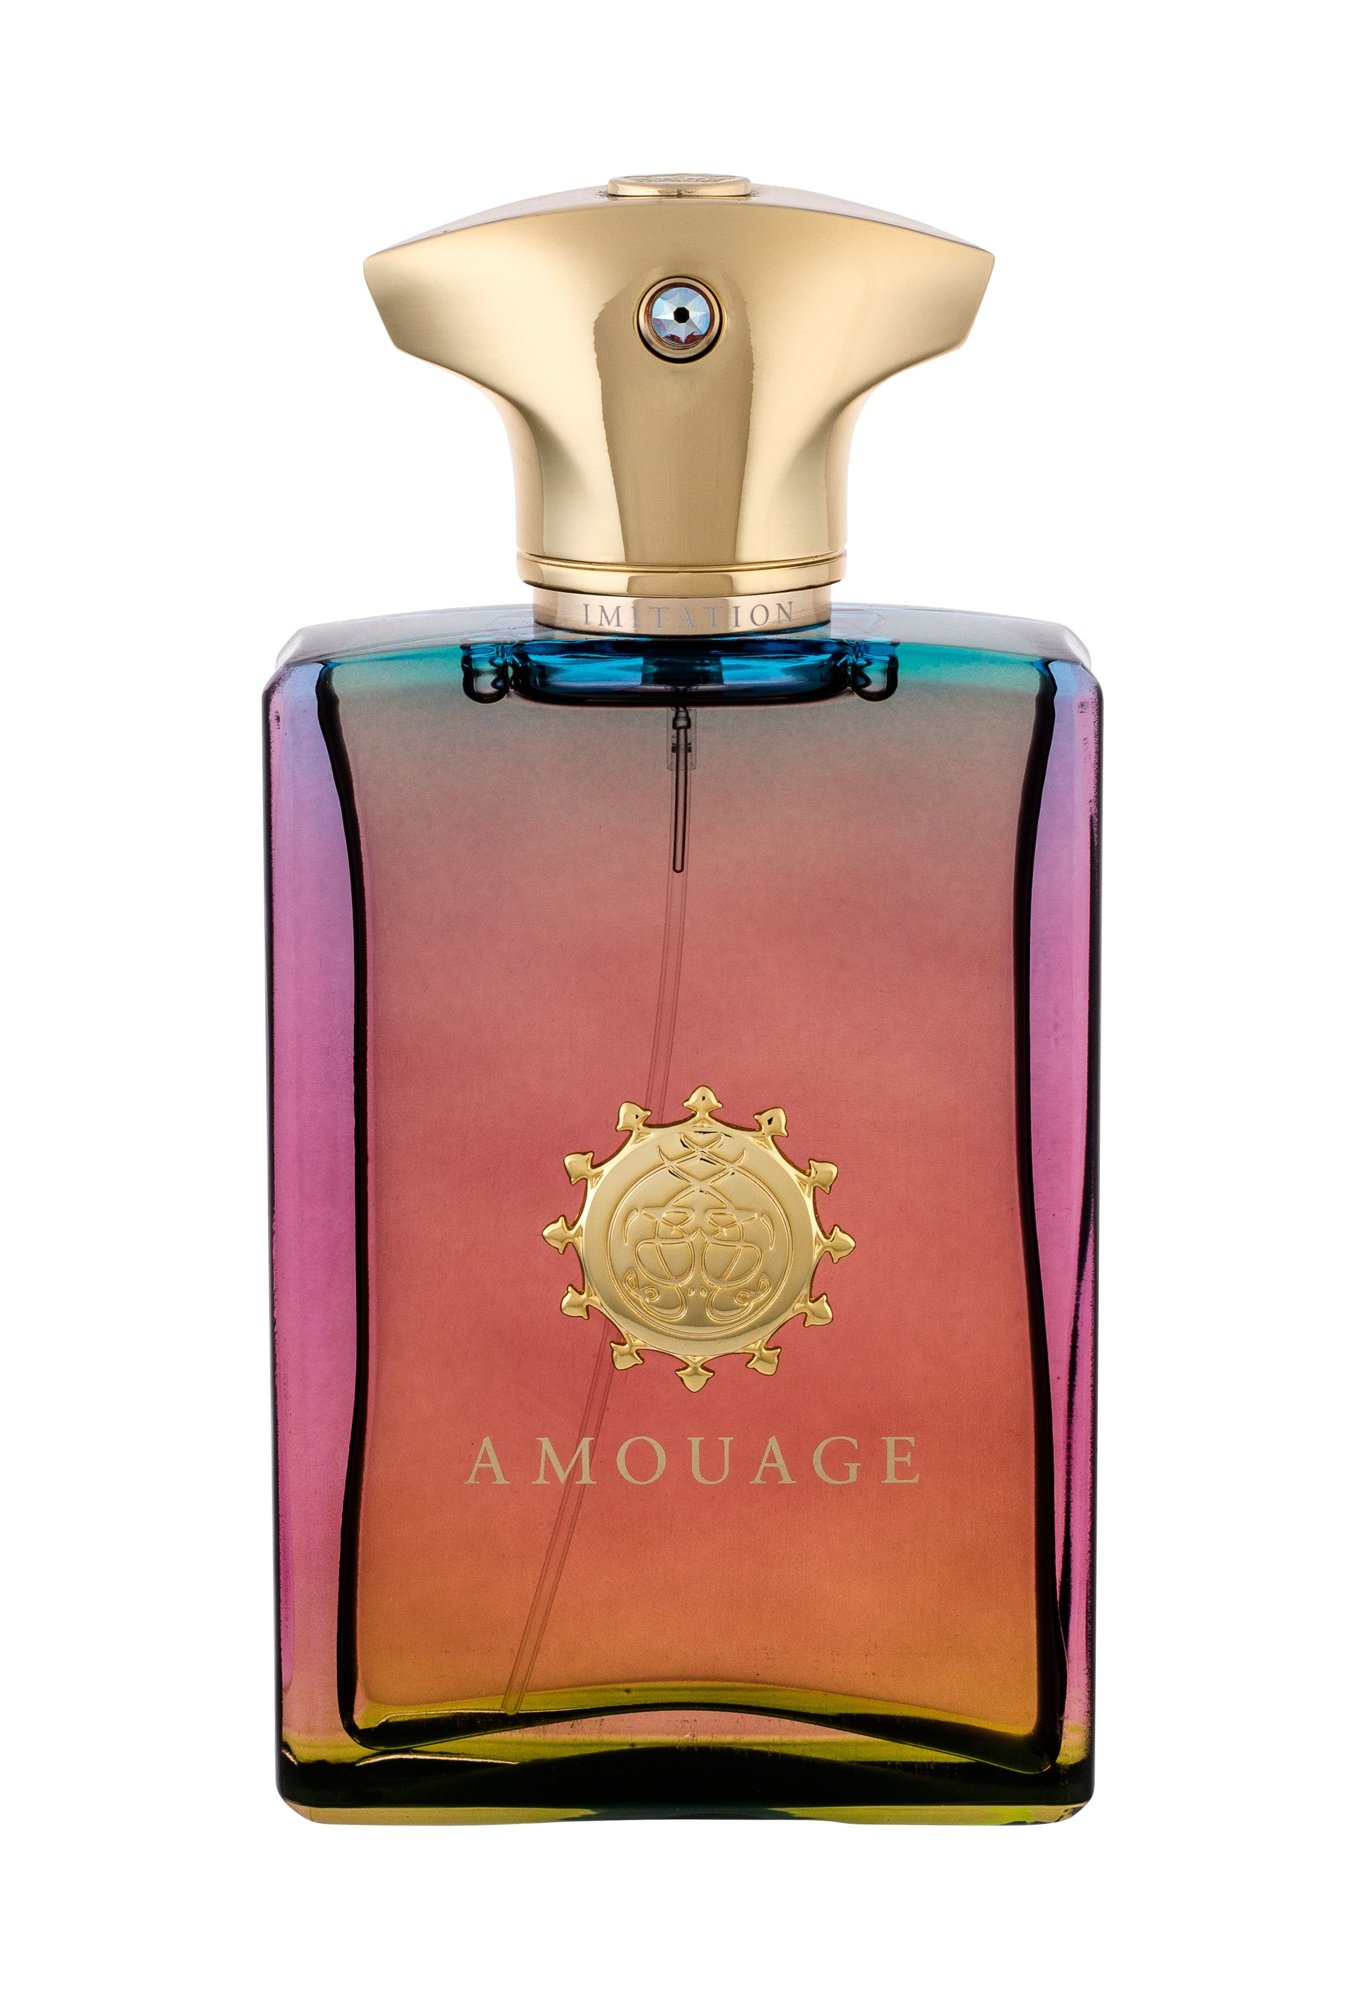 Amouage Imitation Eau de Parfum 100ml  For Men